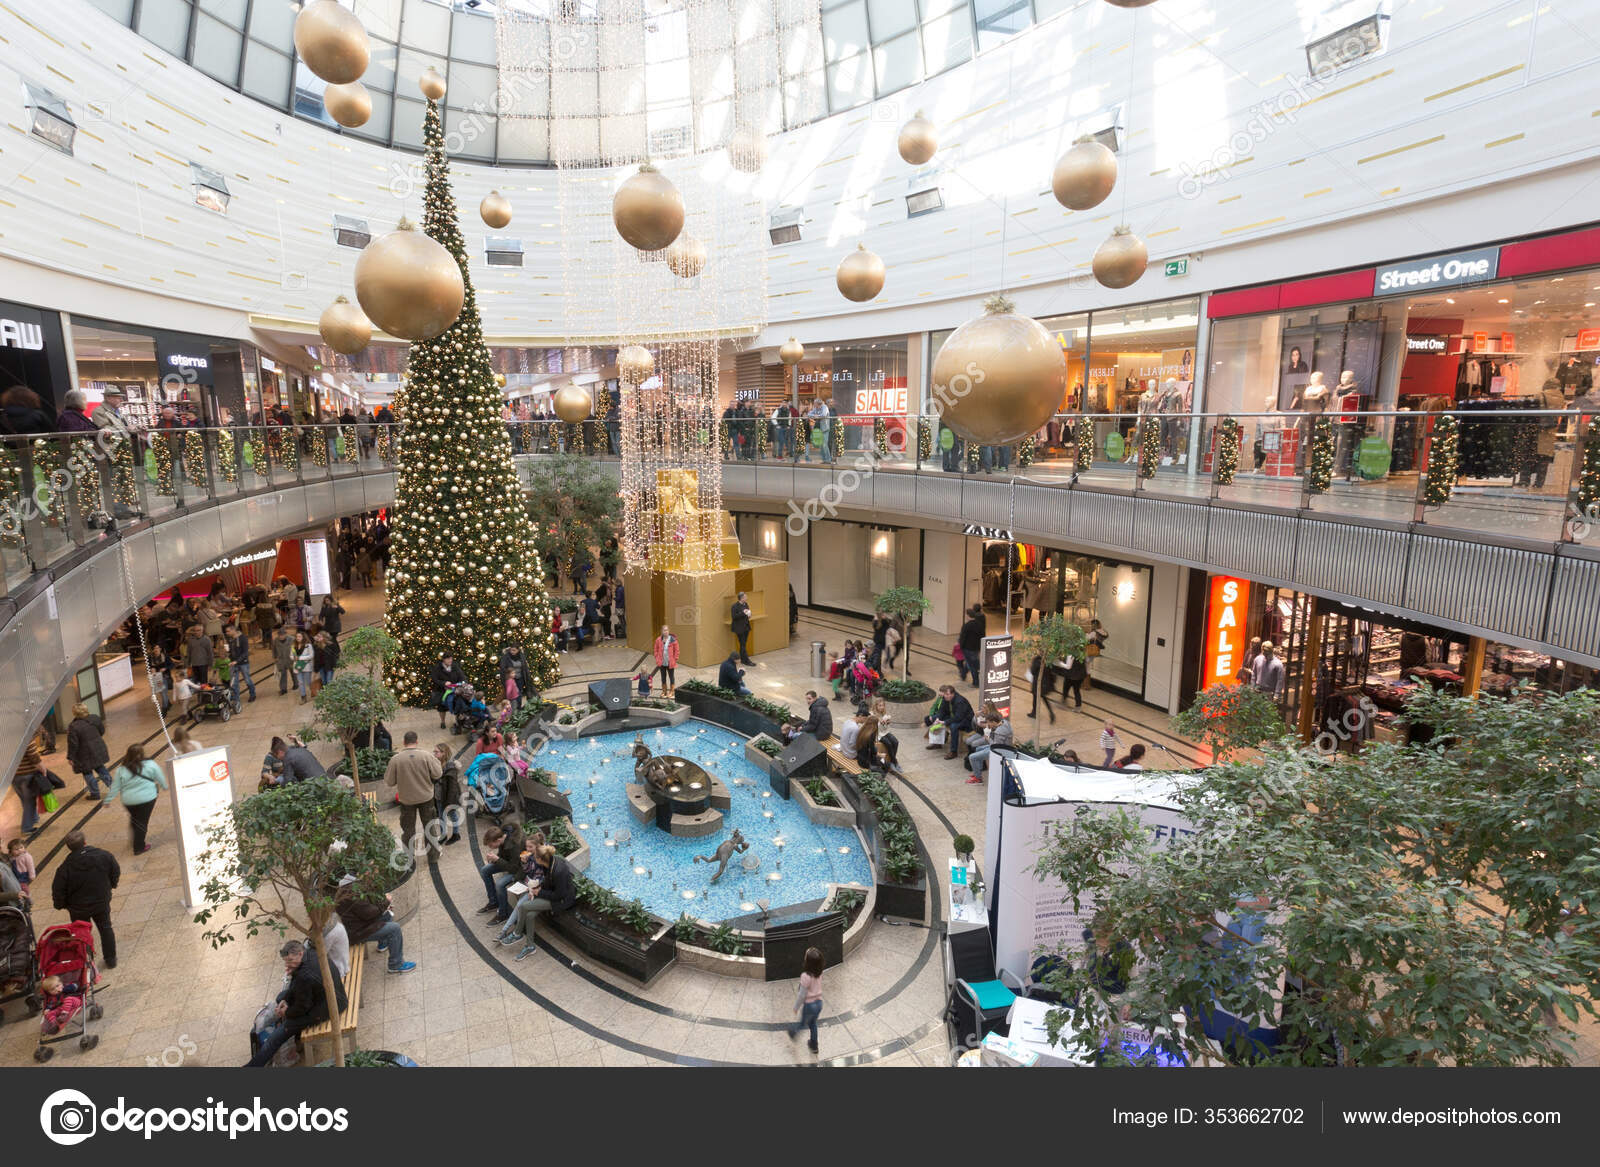 Shopping Center City Galerie Mall December 2015 Augsburg Germany – Stock  Editorial Photo © Alexandre17 #353662702